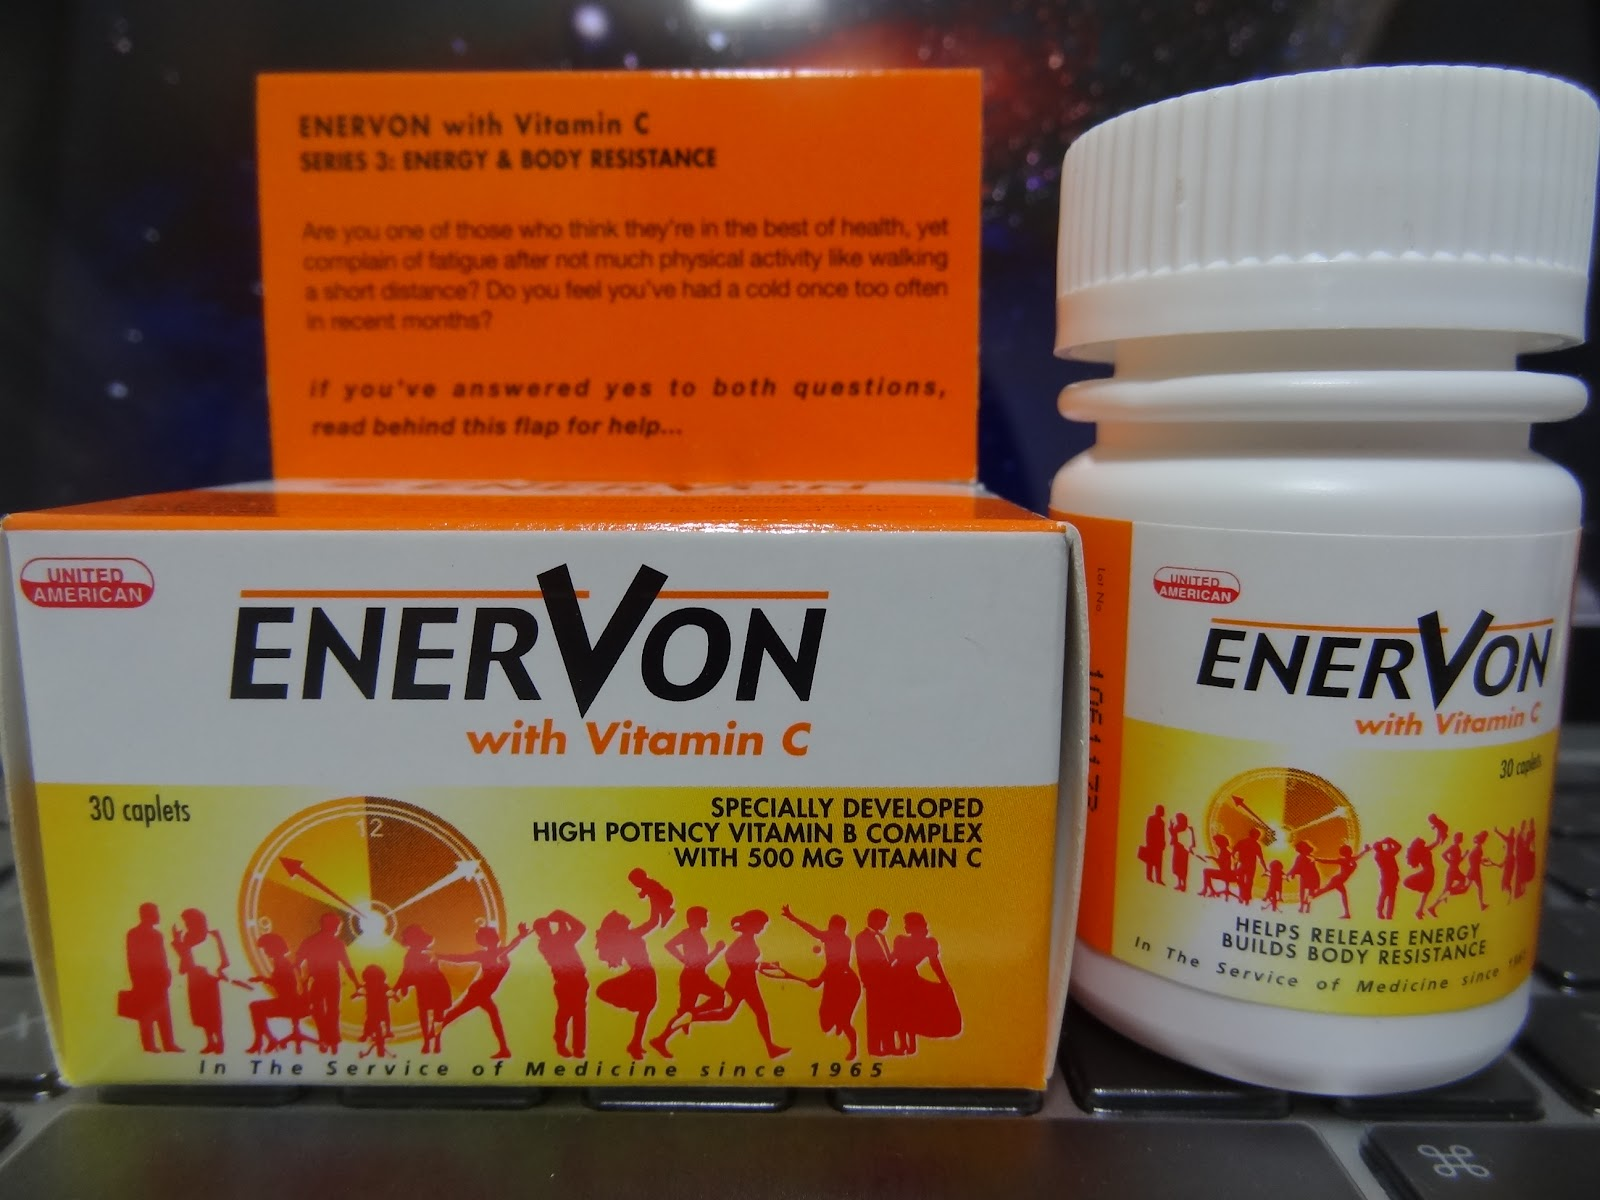 e8b8ab43c332 Sometimes, I Need a Boost! - Enervon with Vitamin C | Positively Nice